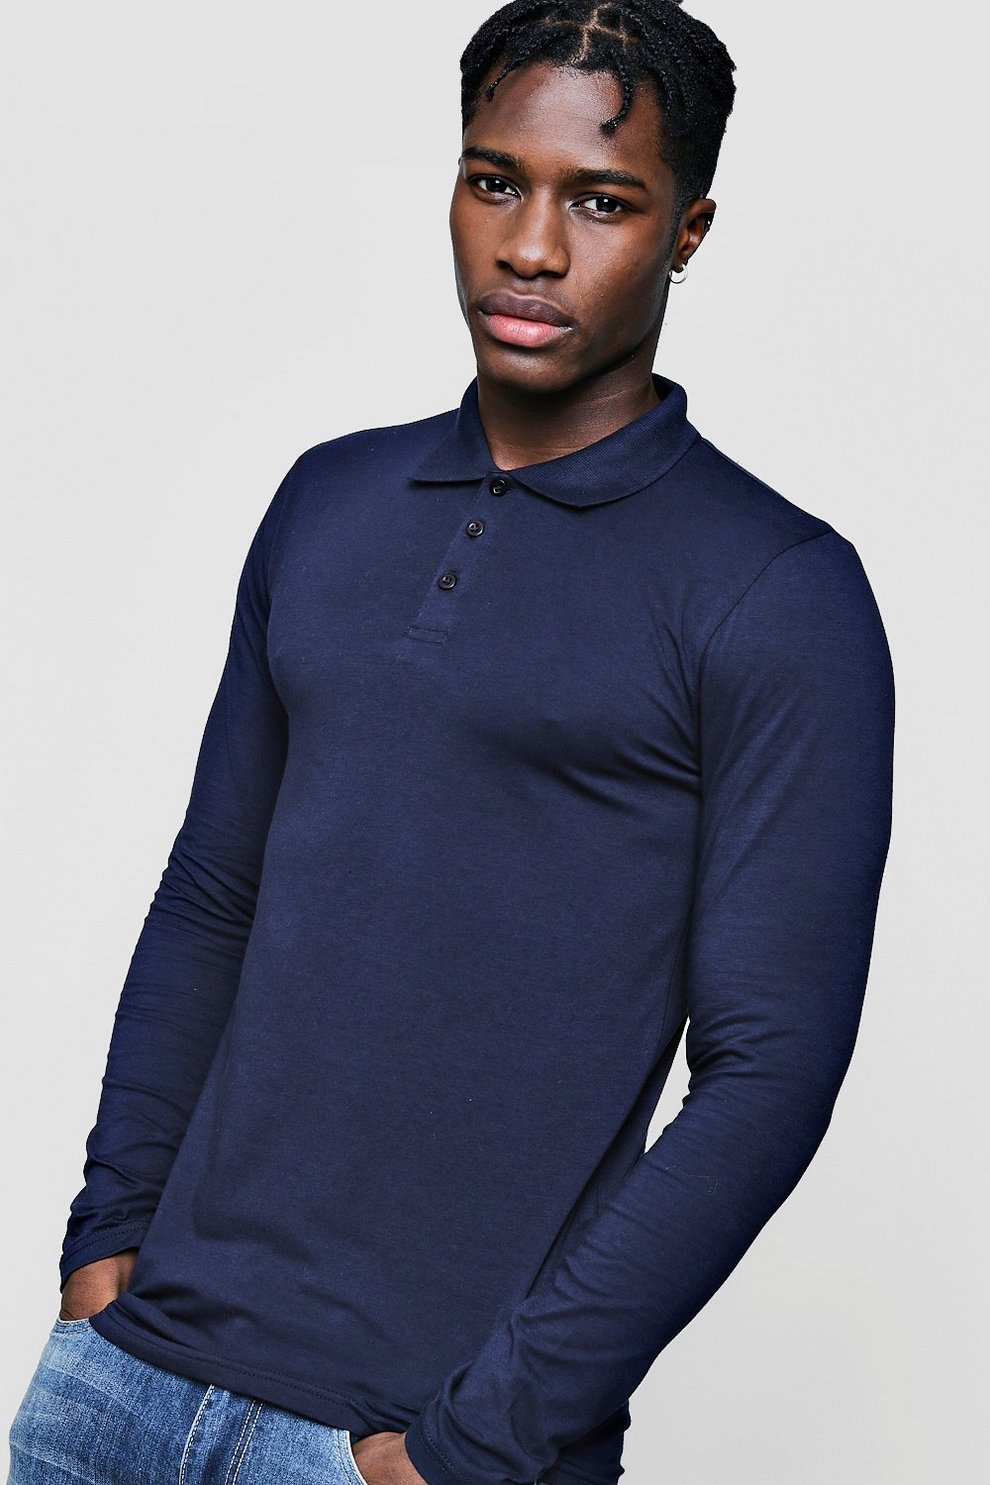 539c659d Mens Navy Long Sleeve Muscle Fit Polo. Hover to zoom